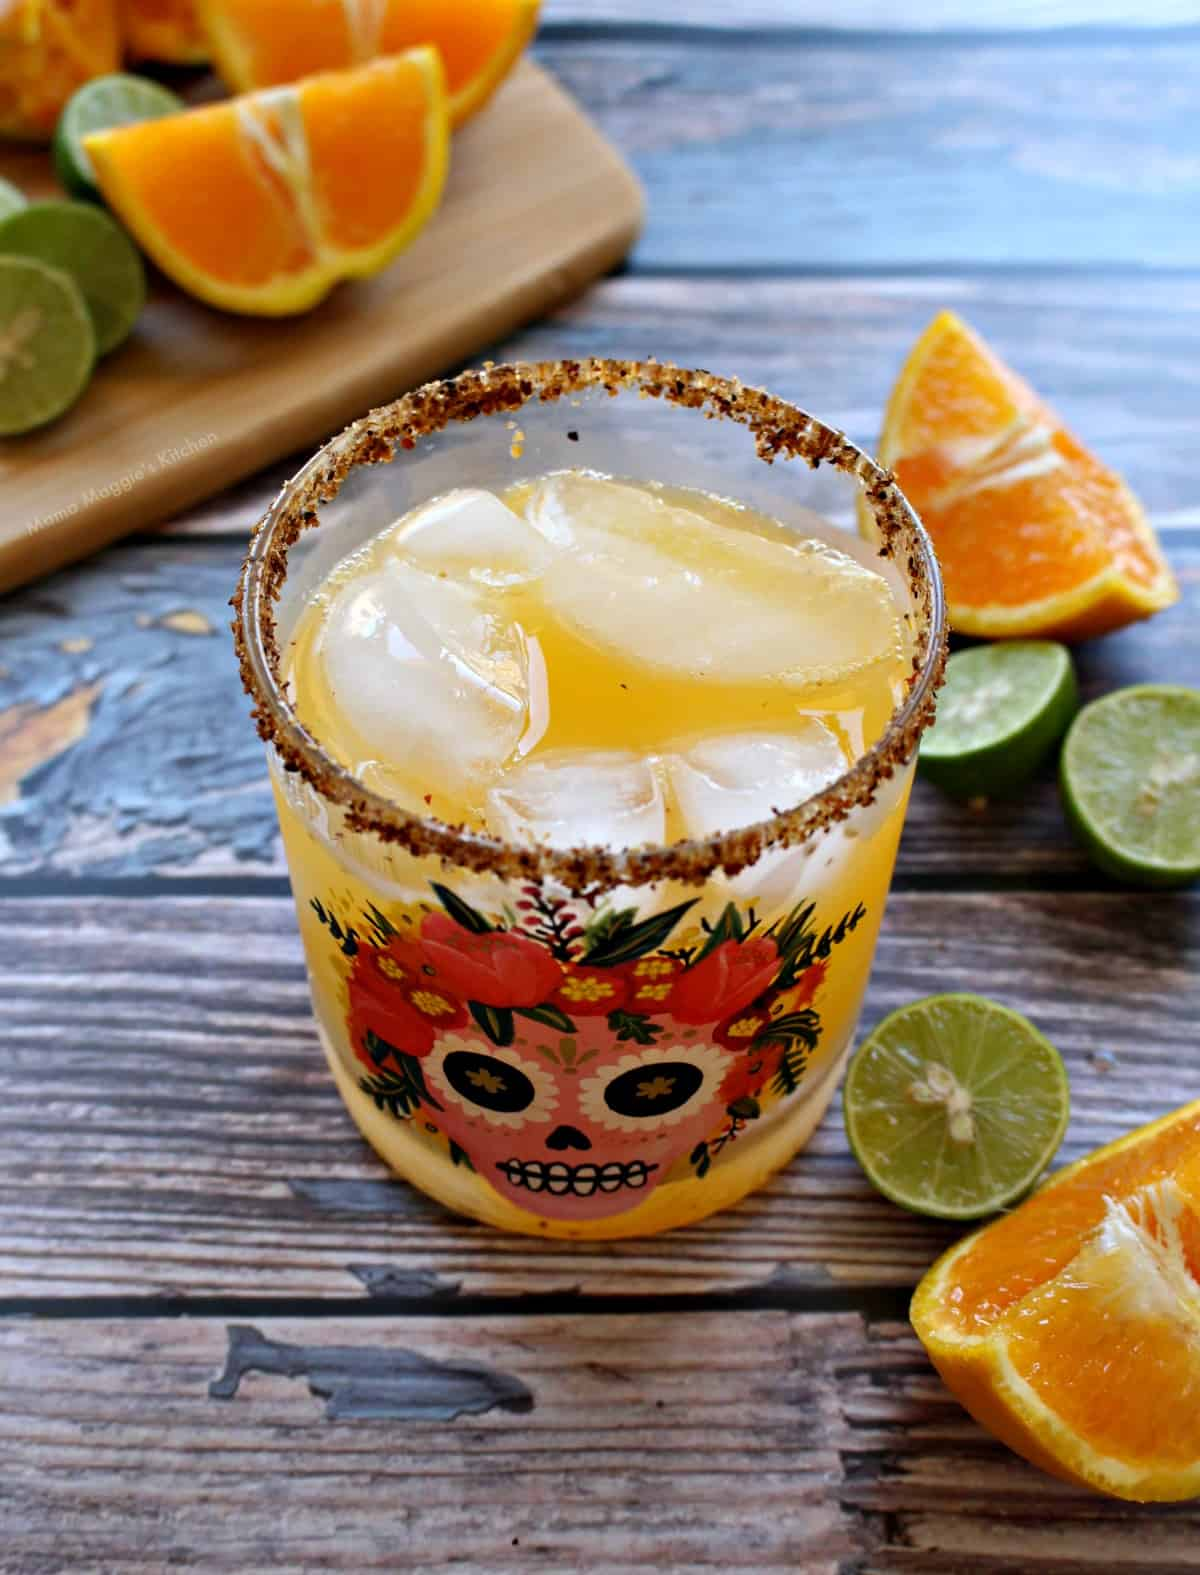 A glass with a Dia de Los Muertos skull on the front filled with Skinny Orange Margarita.